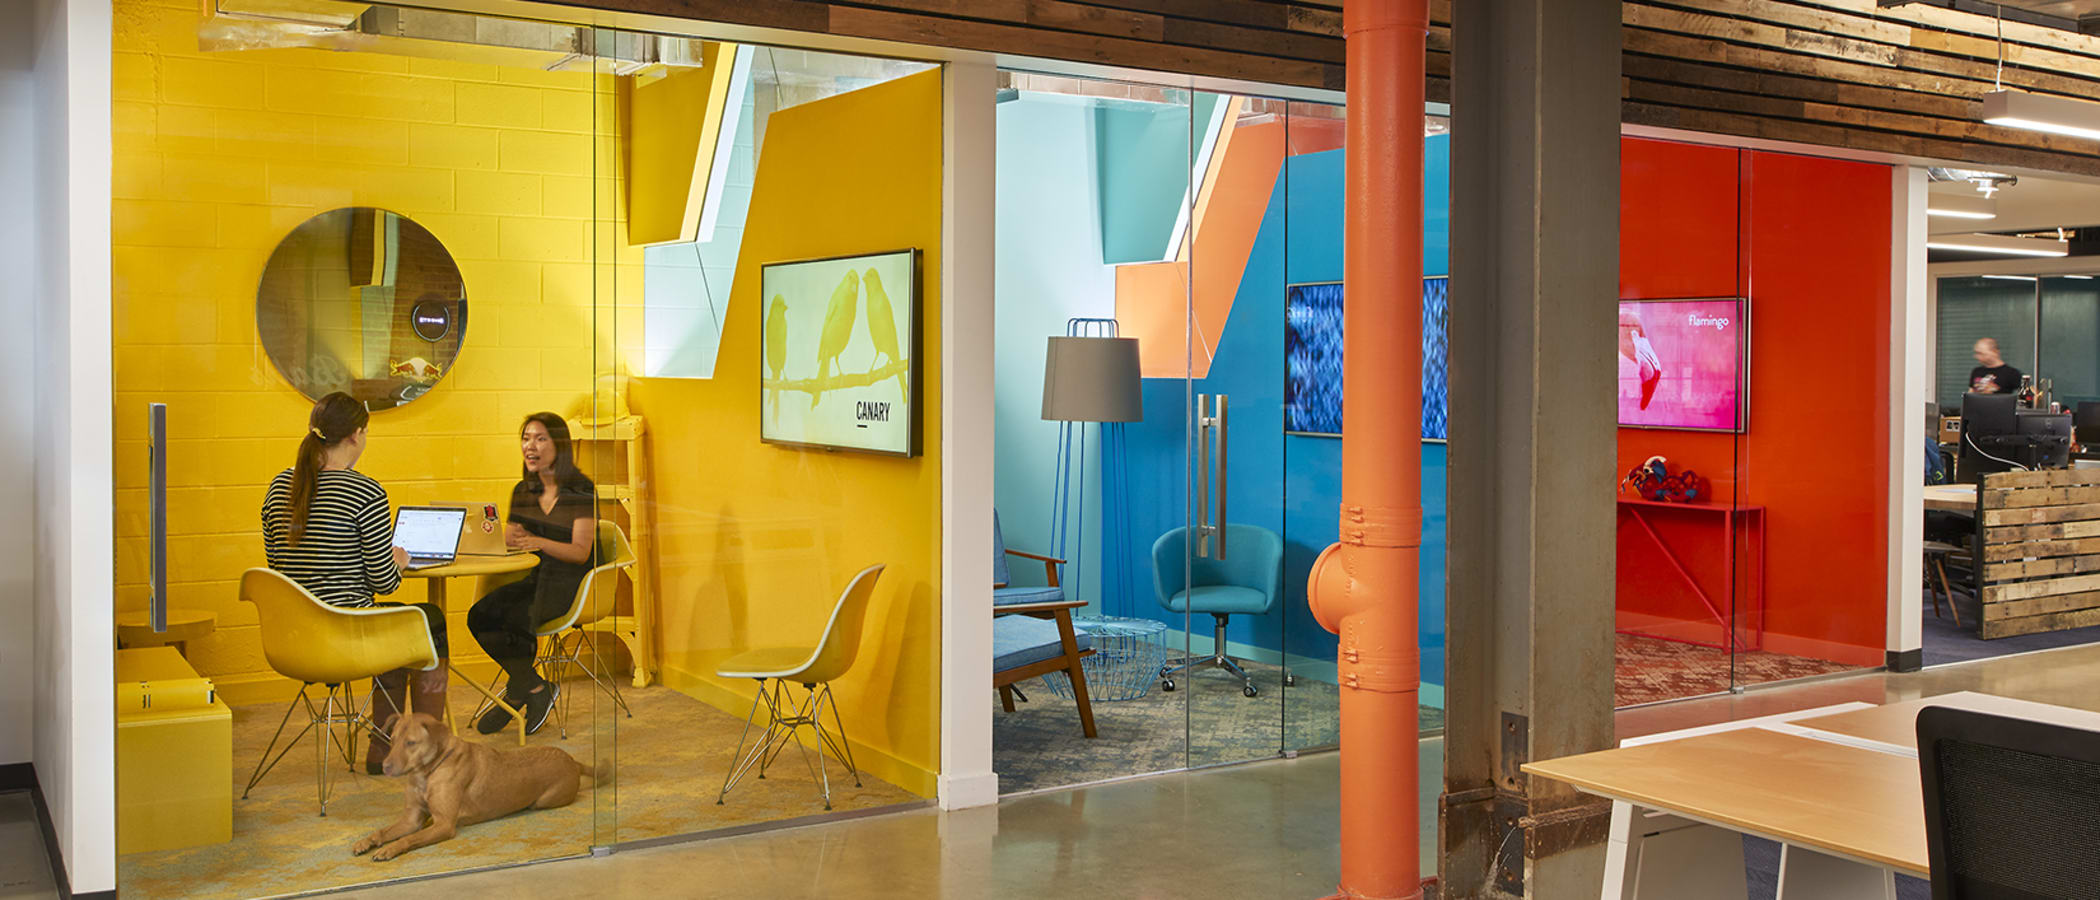 6 Coolest Workspaces that Aren't Apple, Amazon or Microsoft